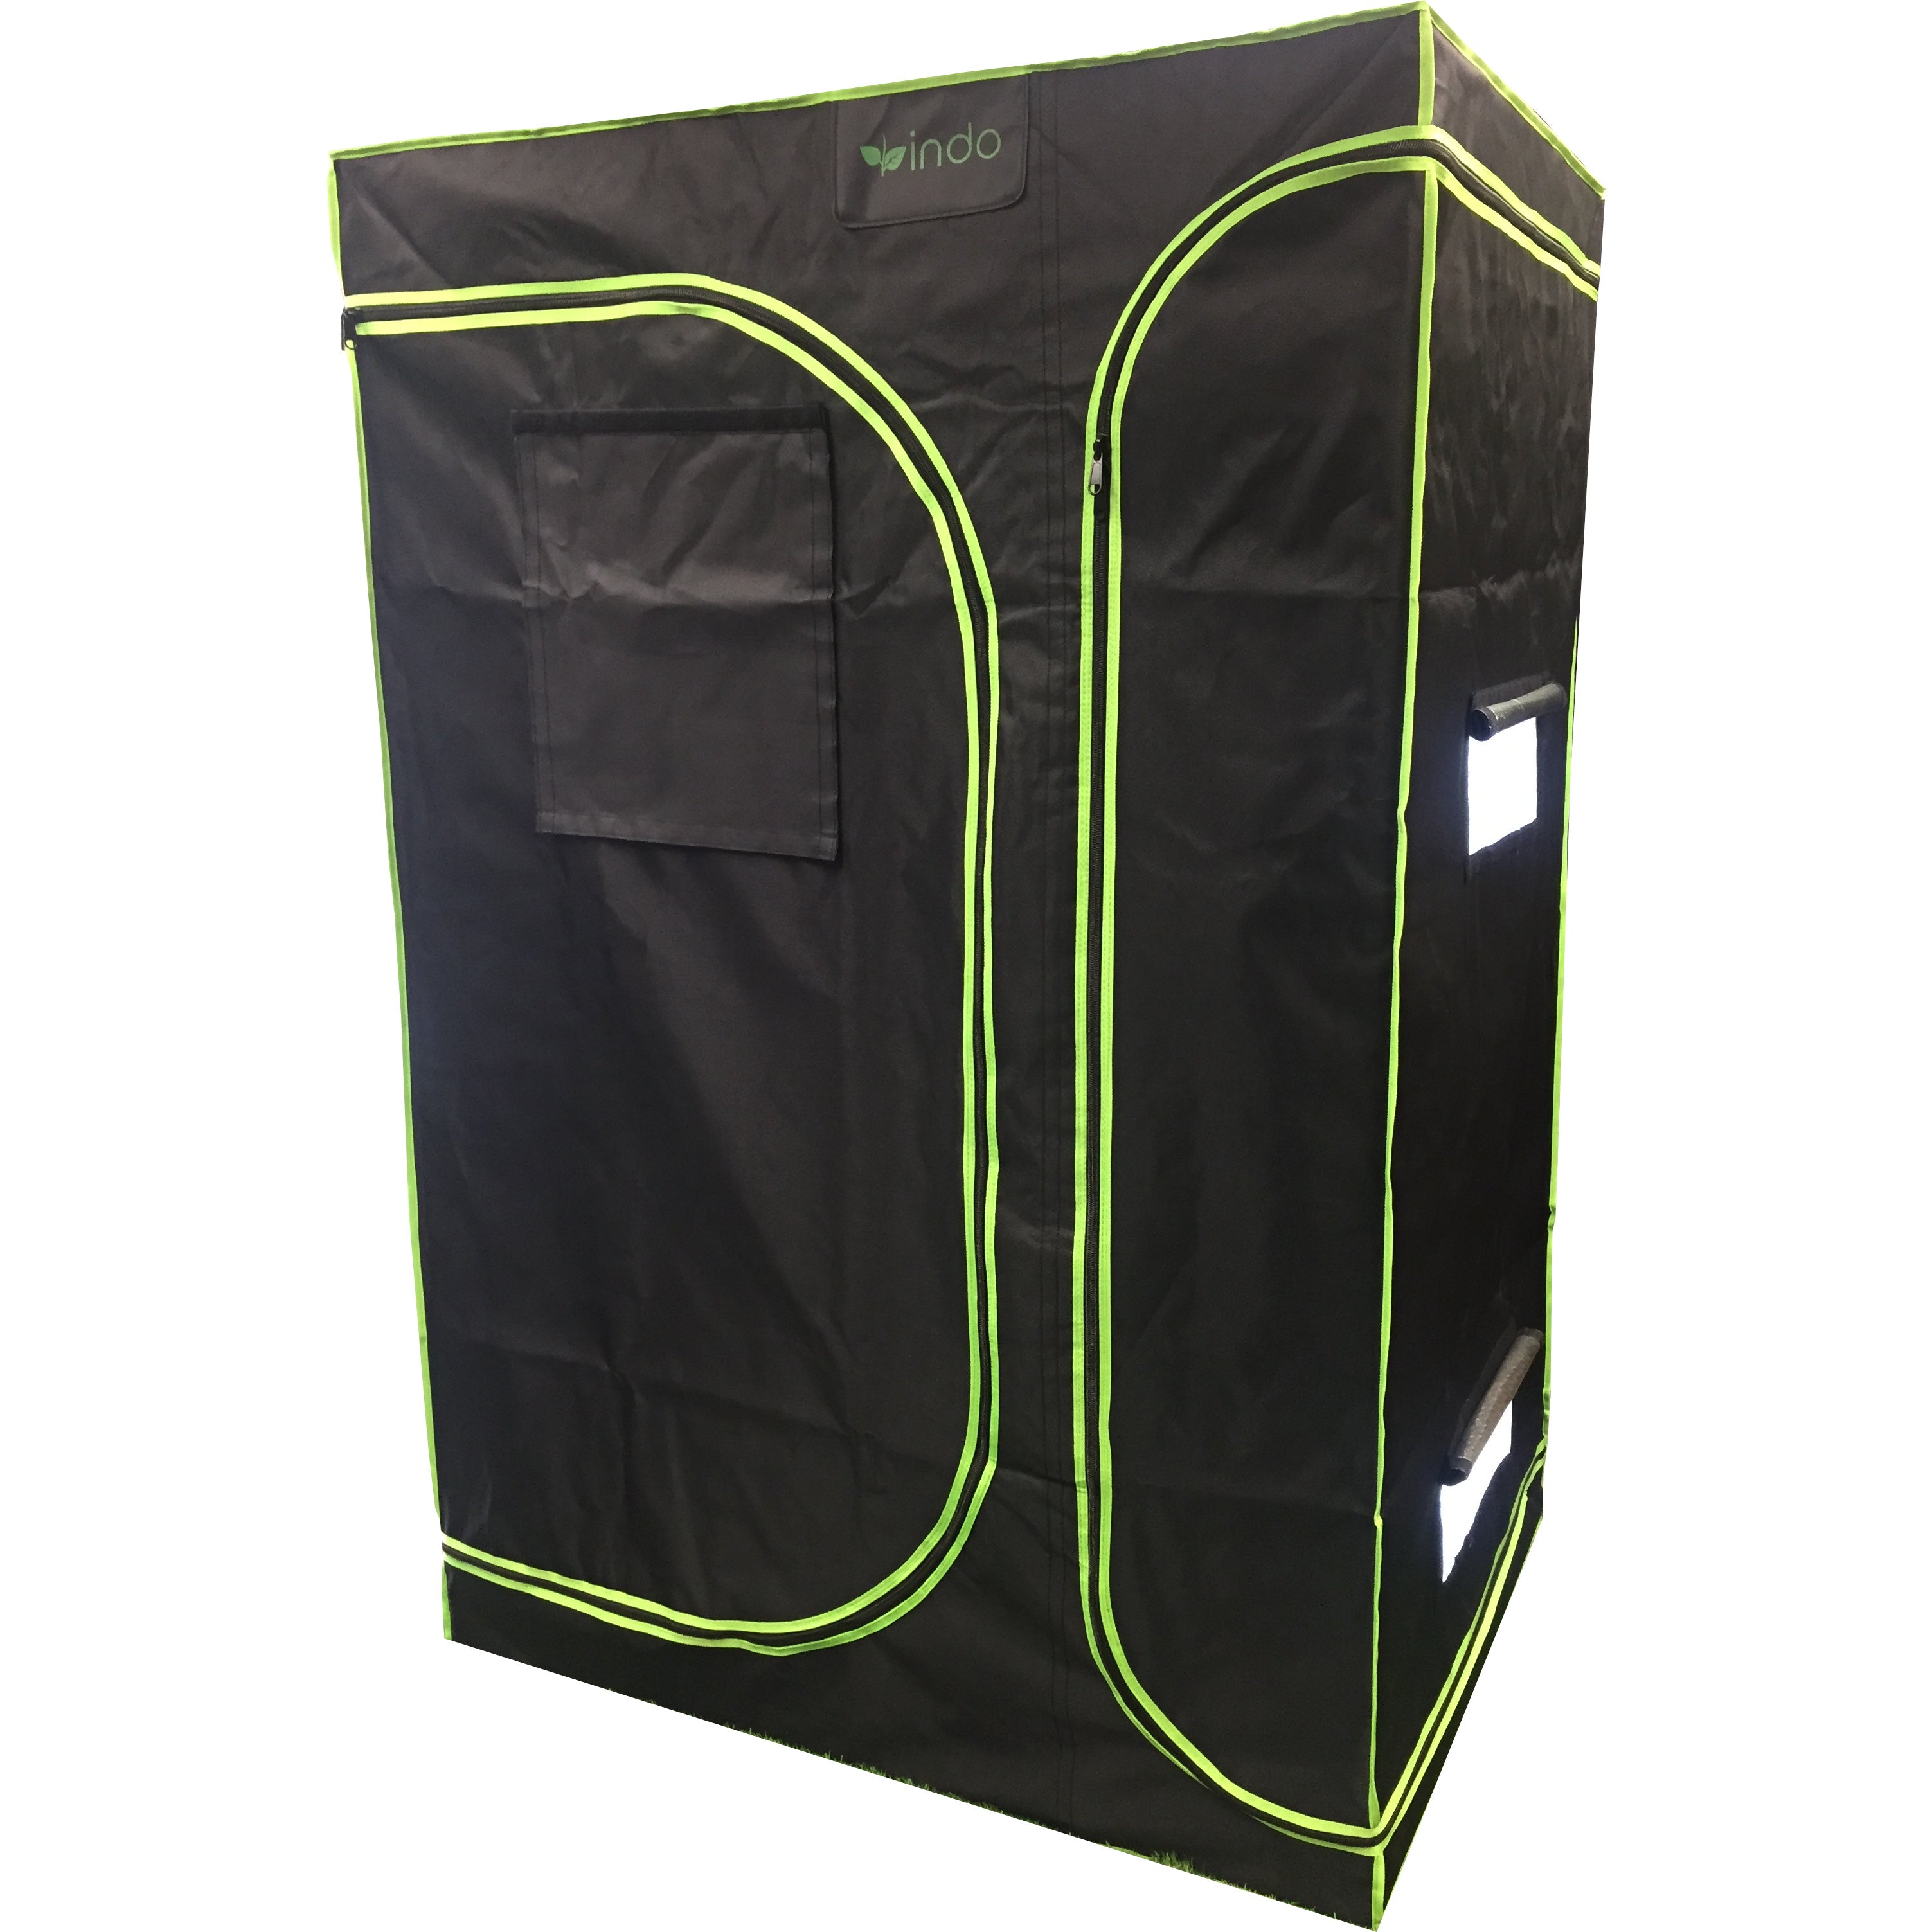 "Grow Tent - 2 in 1 - 60""x48""x80"" - 1680D Oxford Mylar, 19mm Steel poles, Observation Window, HD Zippers, Removeable Trays"